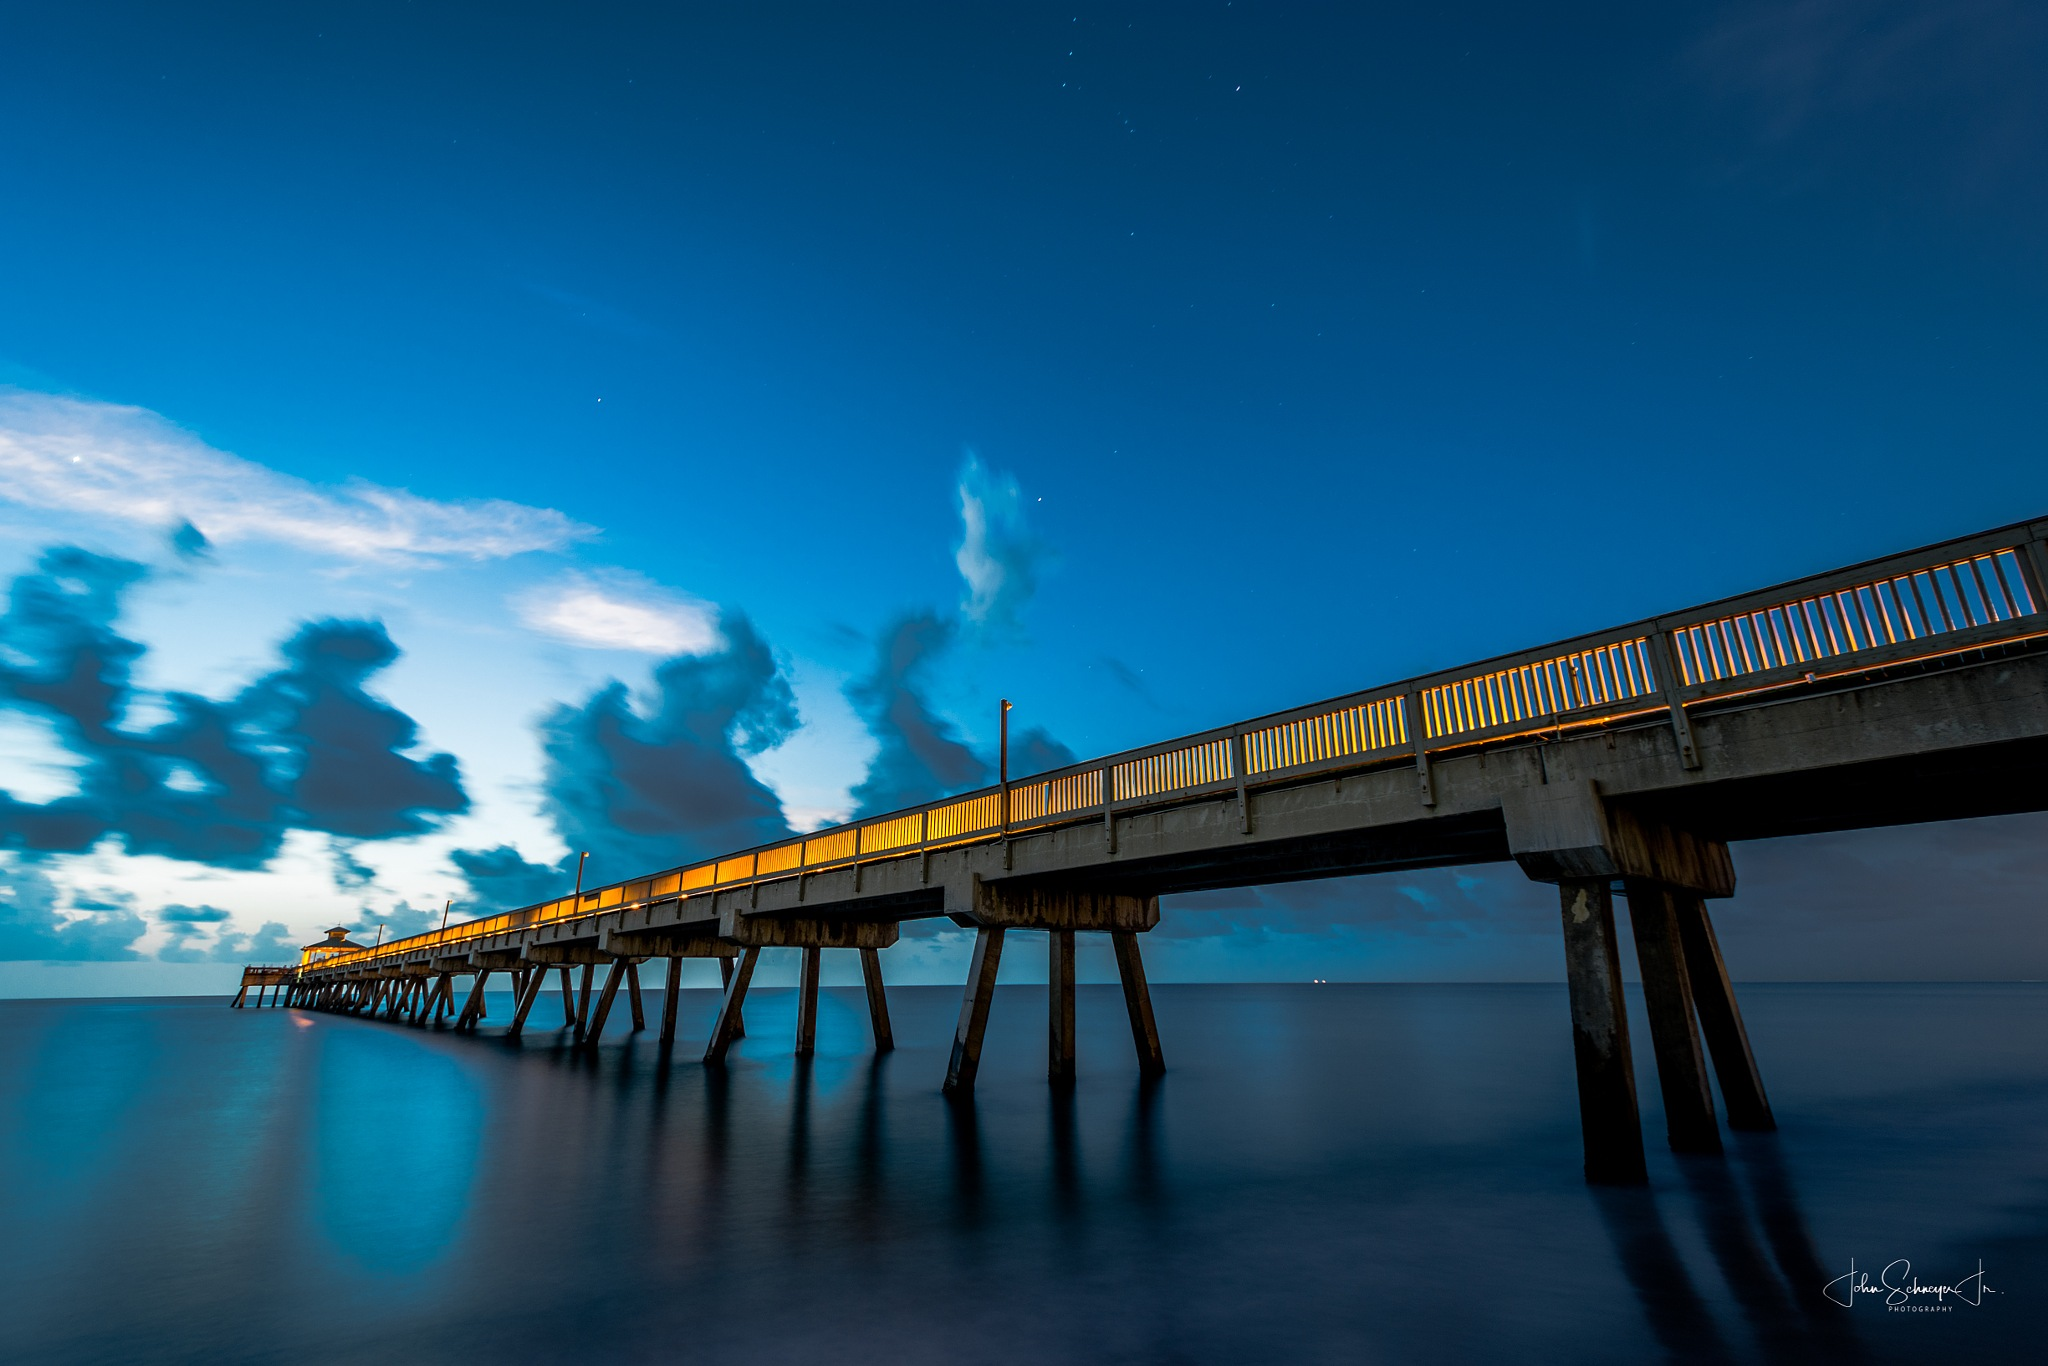 Pier Looking South by John Schneyer